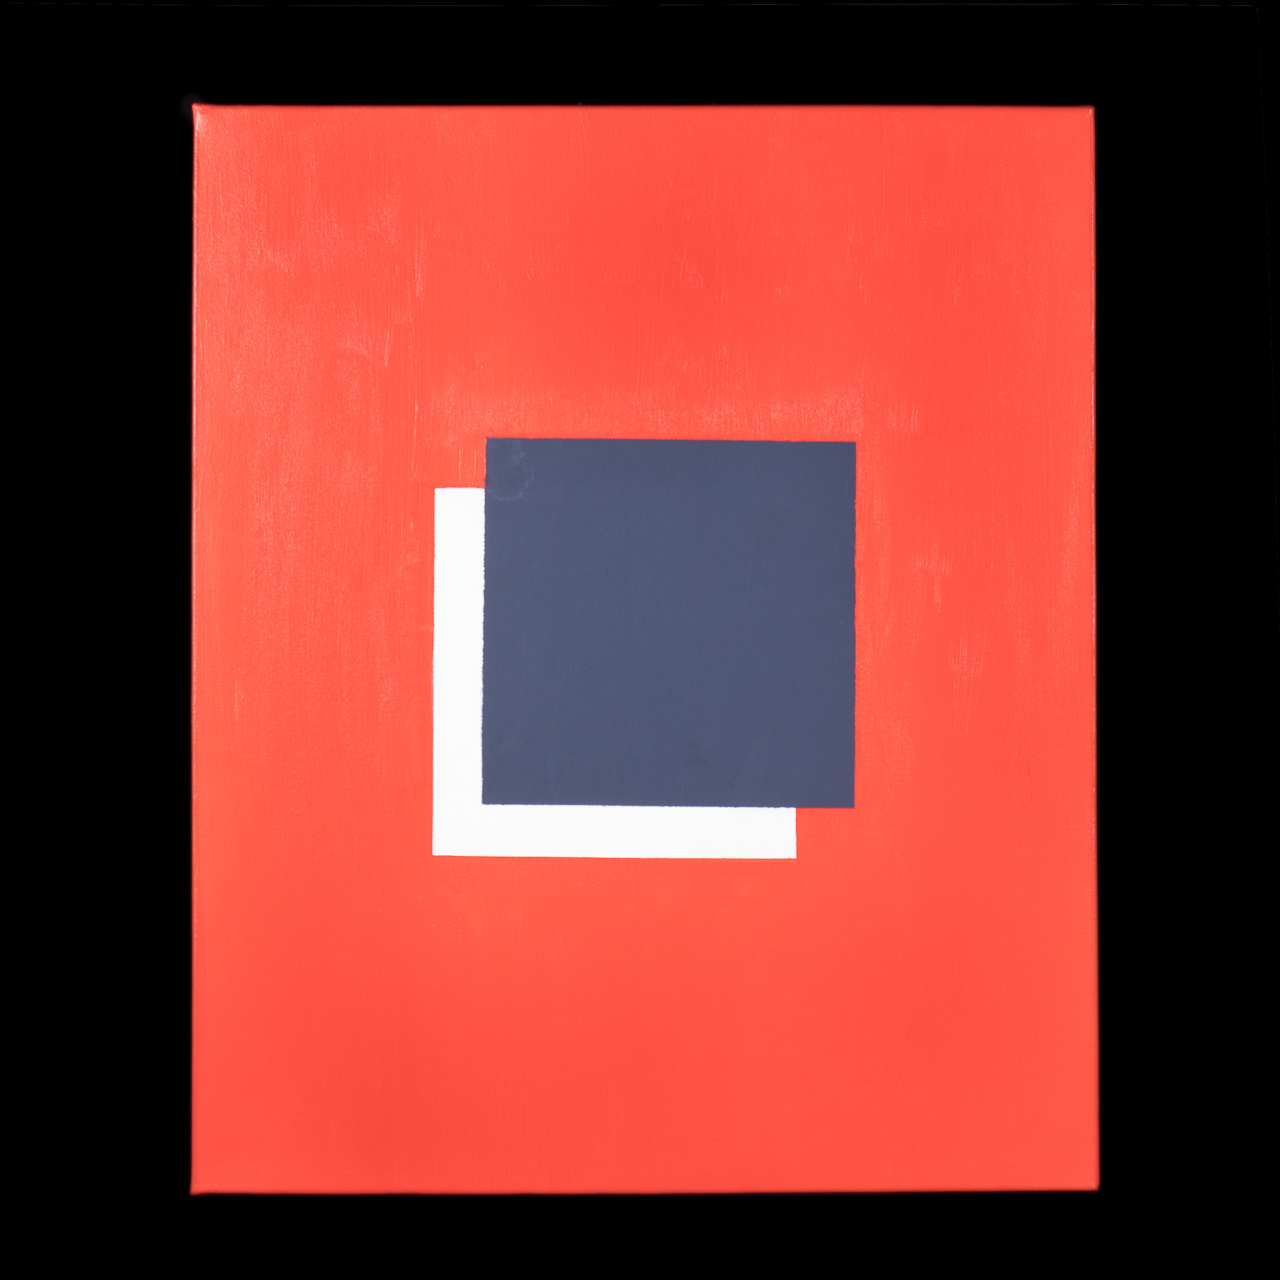 Pair of Contemporary Abstract Paintings Jacob Lloyds - Image 7 of 13